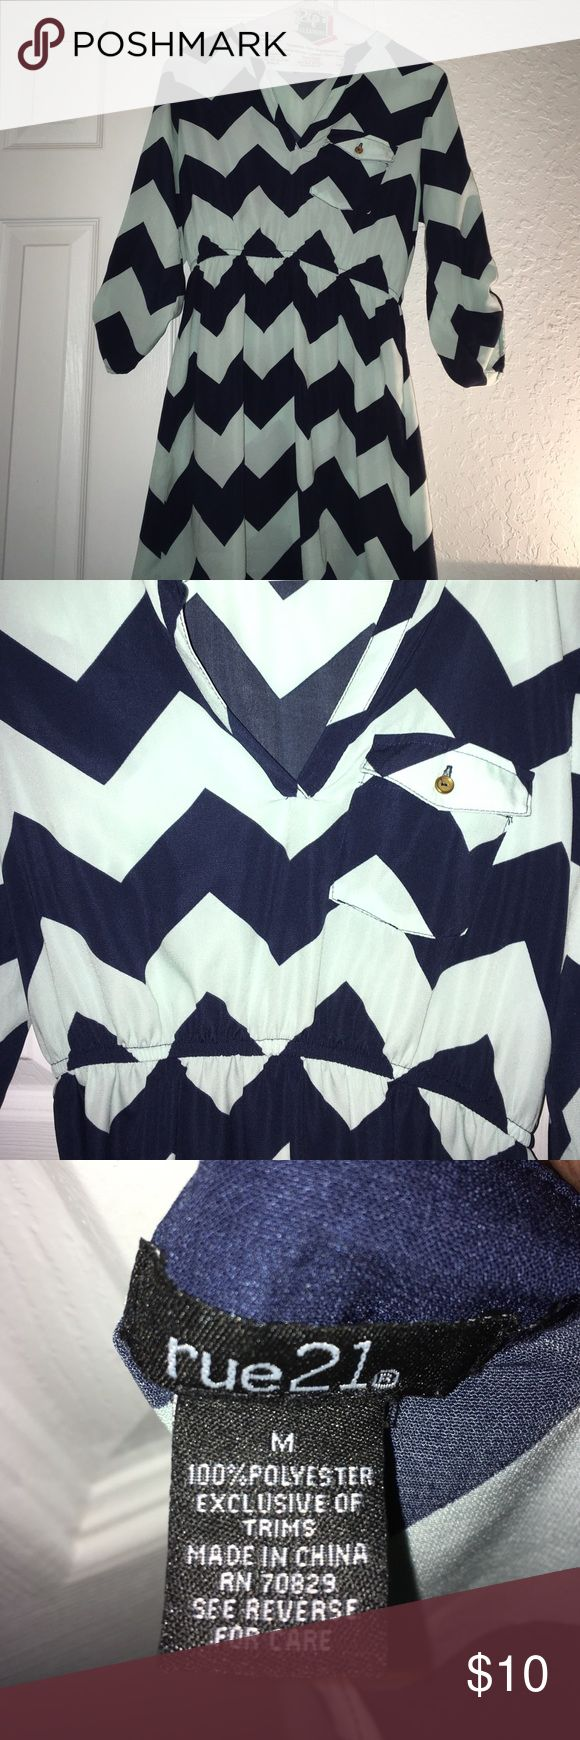 Blue Chevron Print Dress Blue Chevron Print Dress. great condition! All items come from a smoke and pet free home. Offers accepted! Rue 21 Dresses